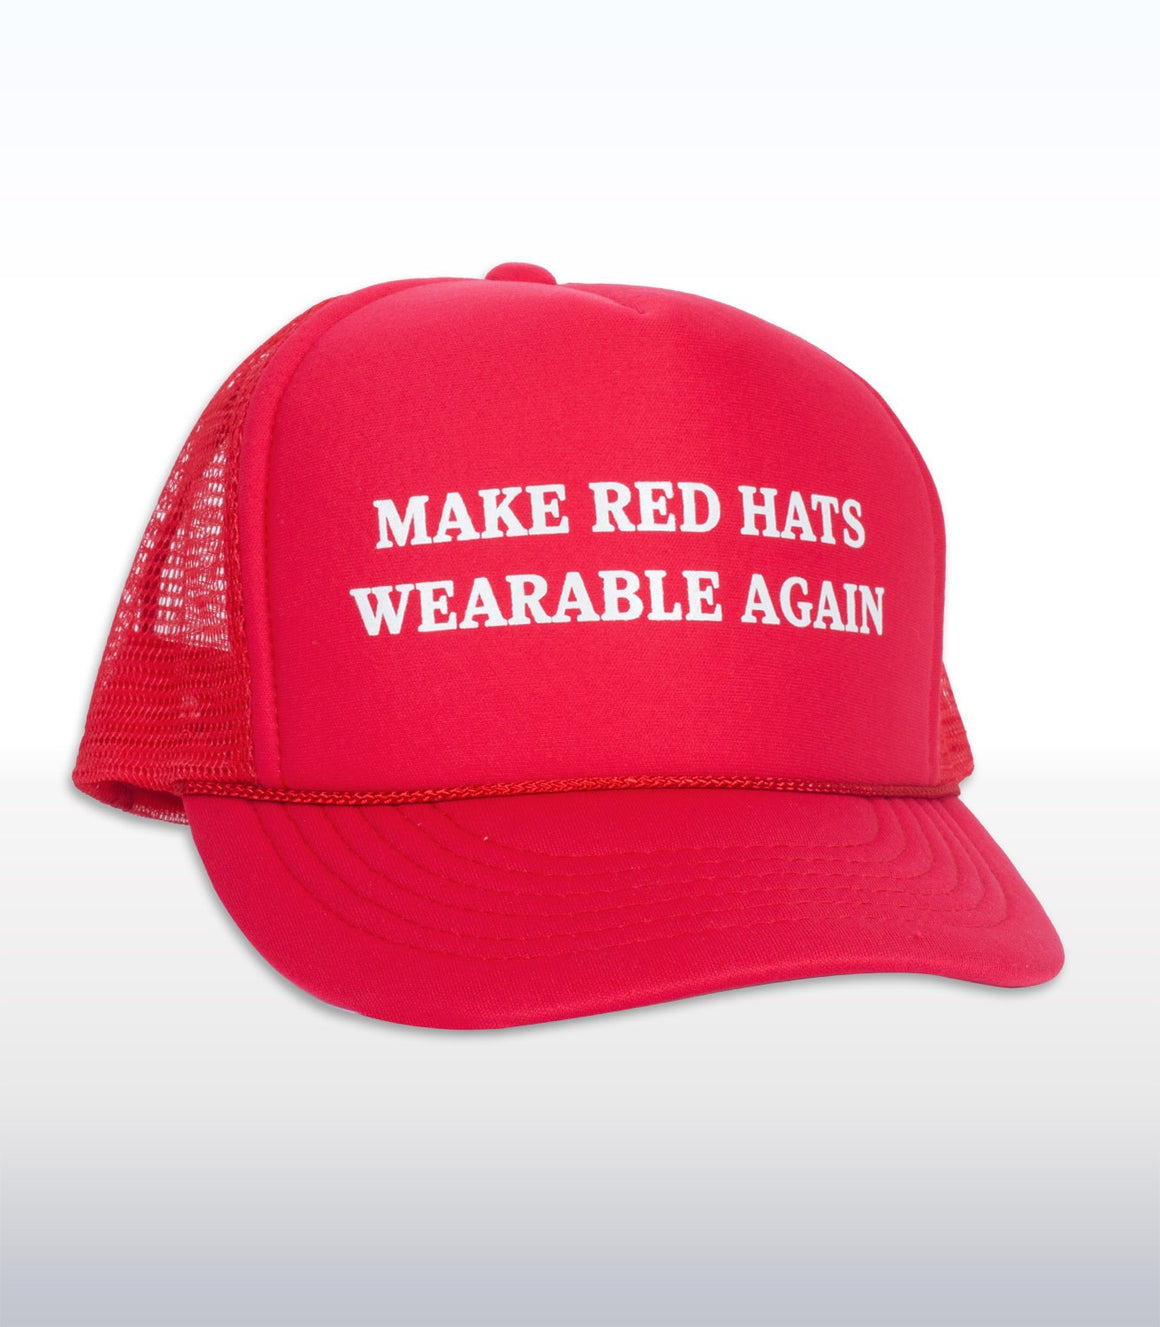 Make Red Hats Wearable Again Trucker Hat - PIQ